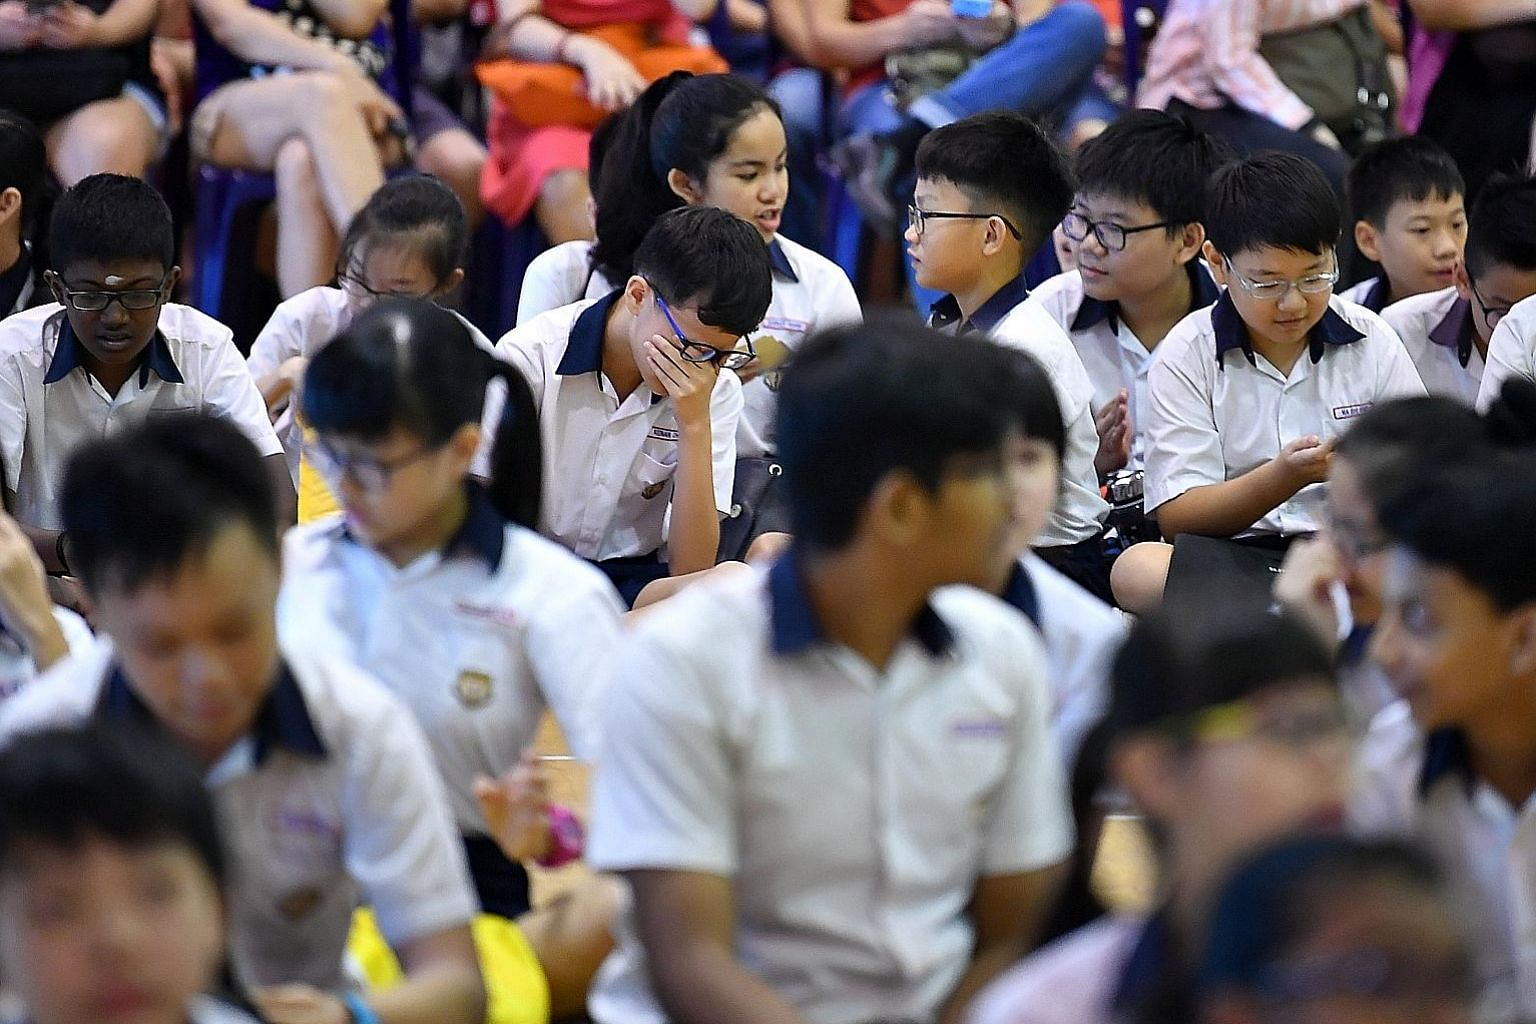 Primary 6 pupils waiting for their PSLE results in November last year. When the writer and her husband had to pick secondary schools for their daughter last year, they prioritised schools without Normal streams. We need to examine our own inherent bi